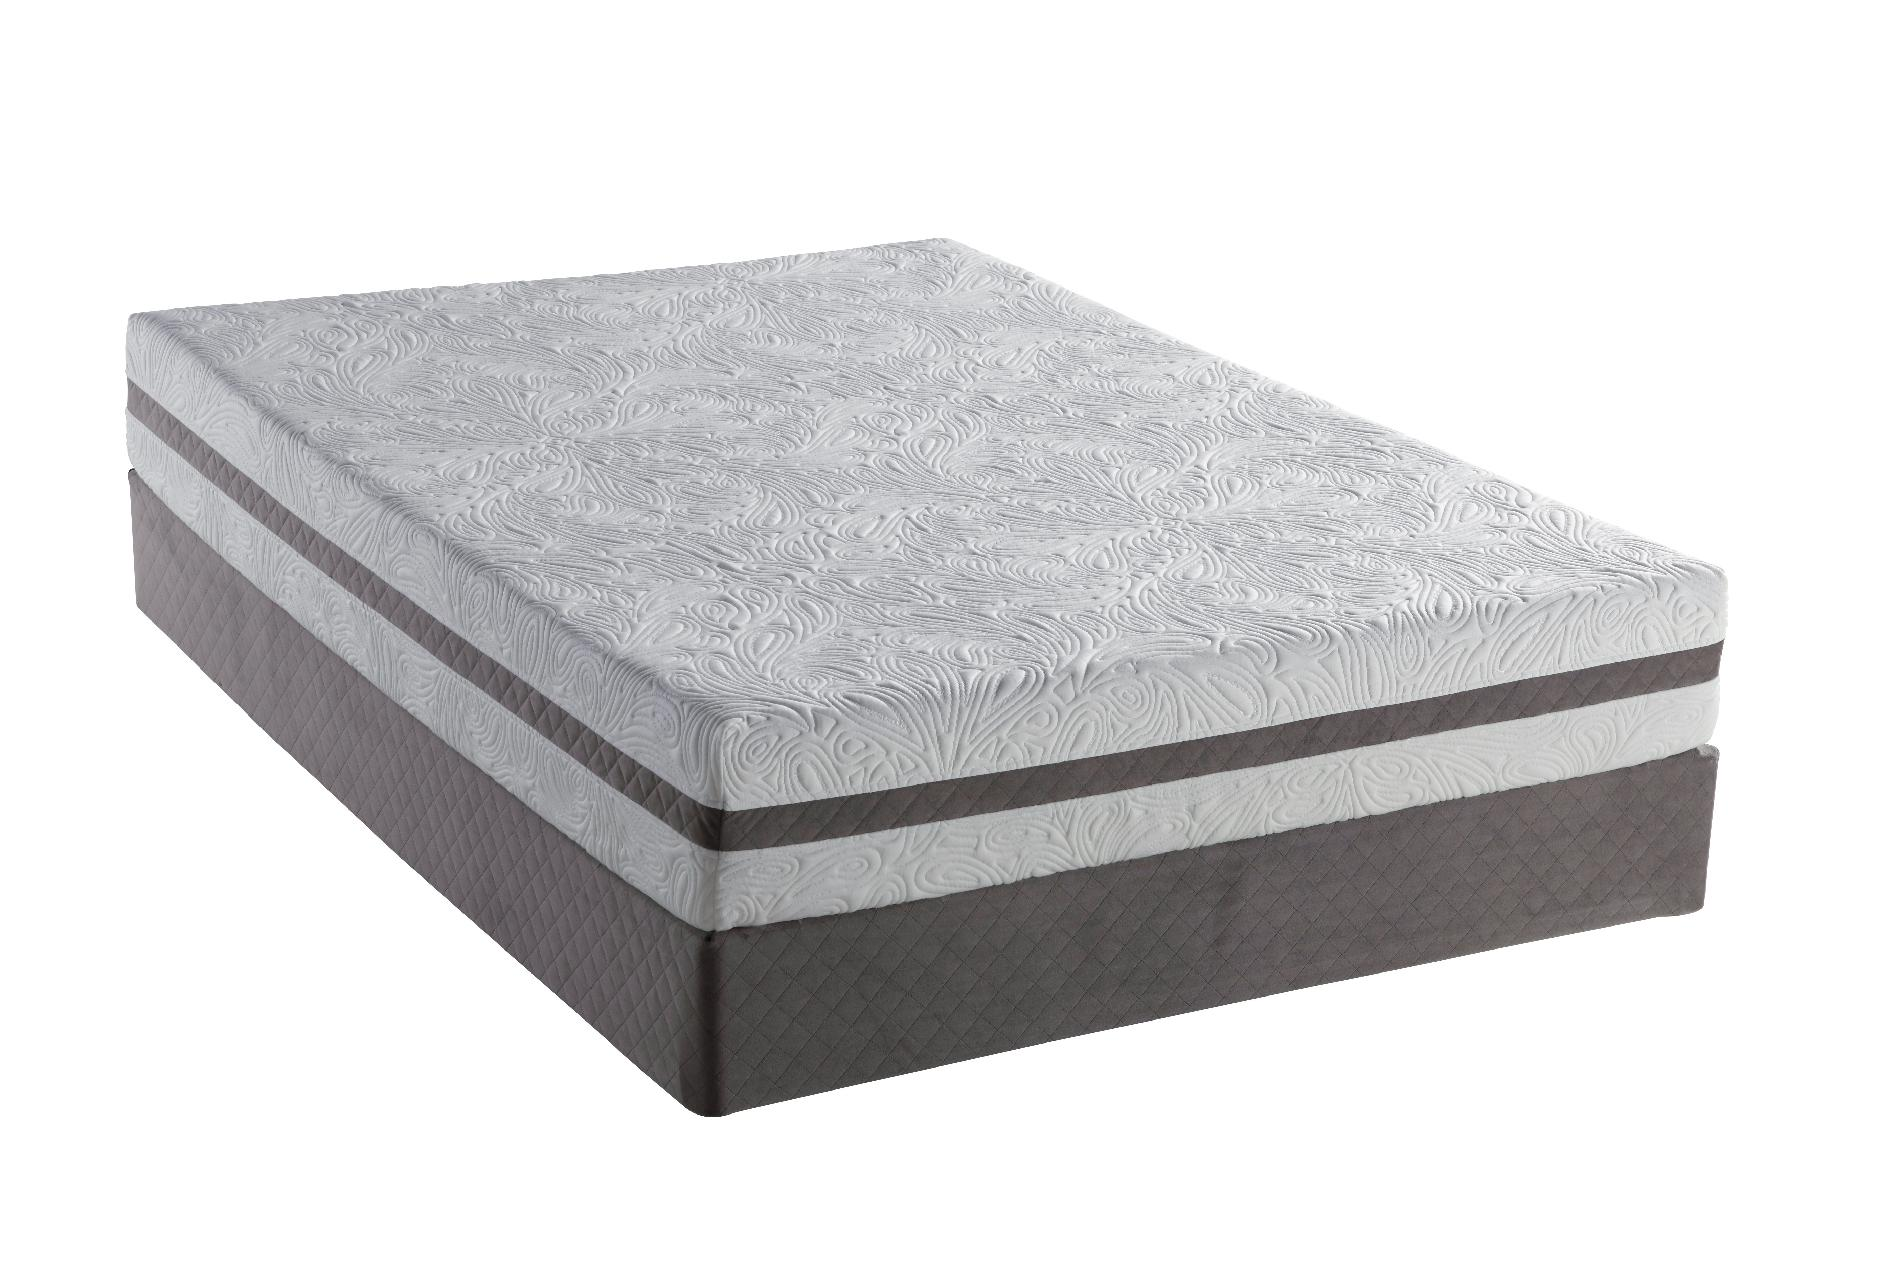 Sealy Posturepedic Optimum Radiance, Firm, King Mattress Only